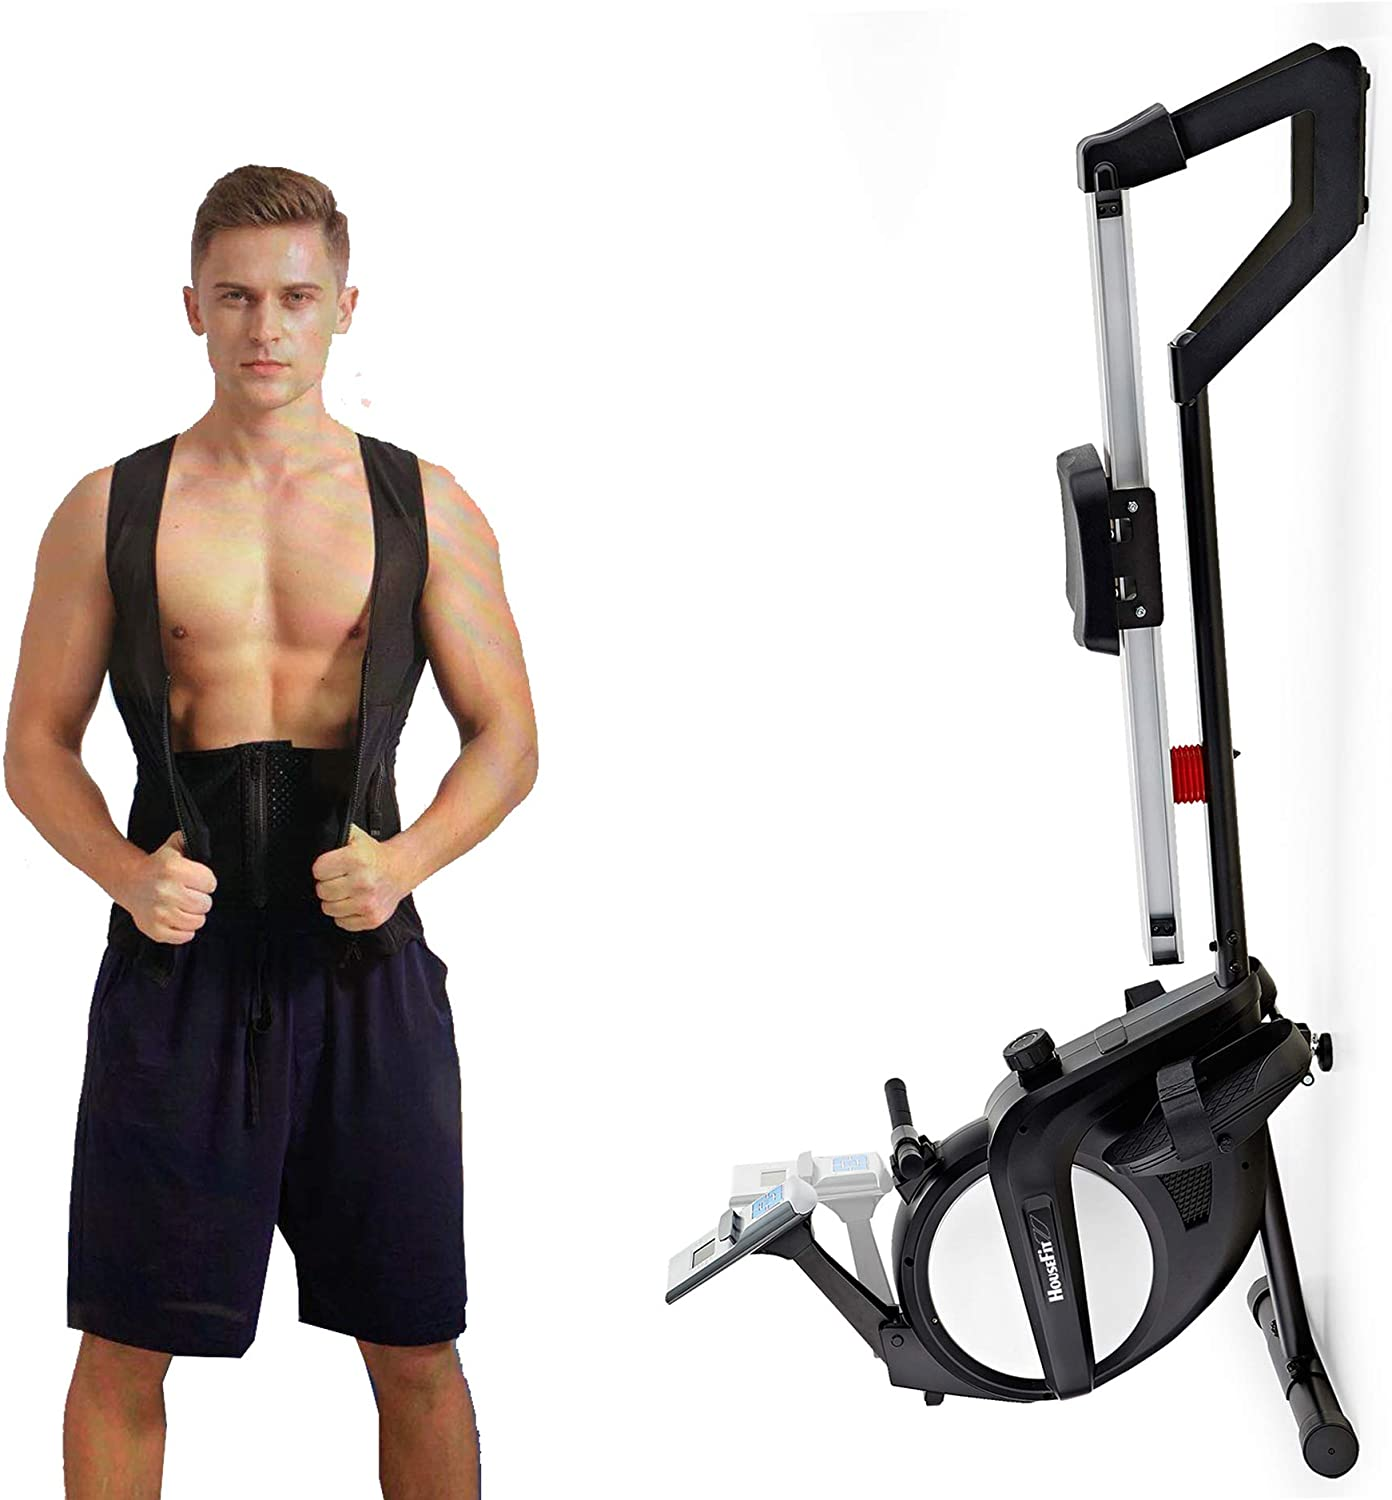 HouseFit Rowing Machine 300Lbs Weight All stores are sold for Capacity 15-L use Online limited product Home